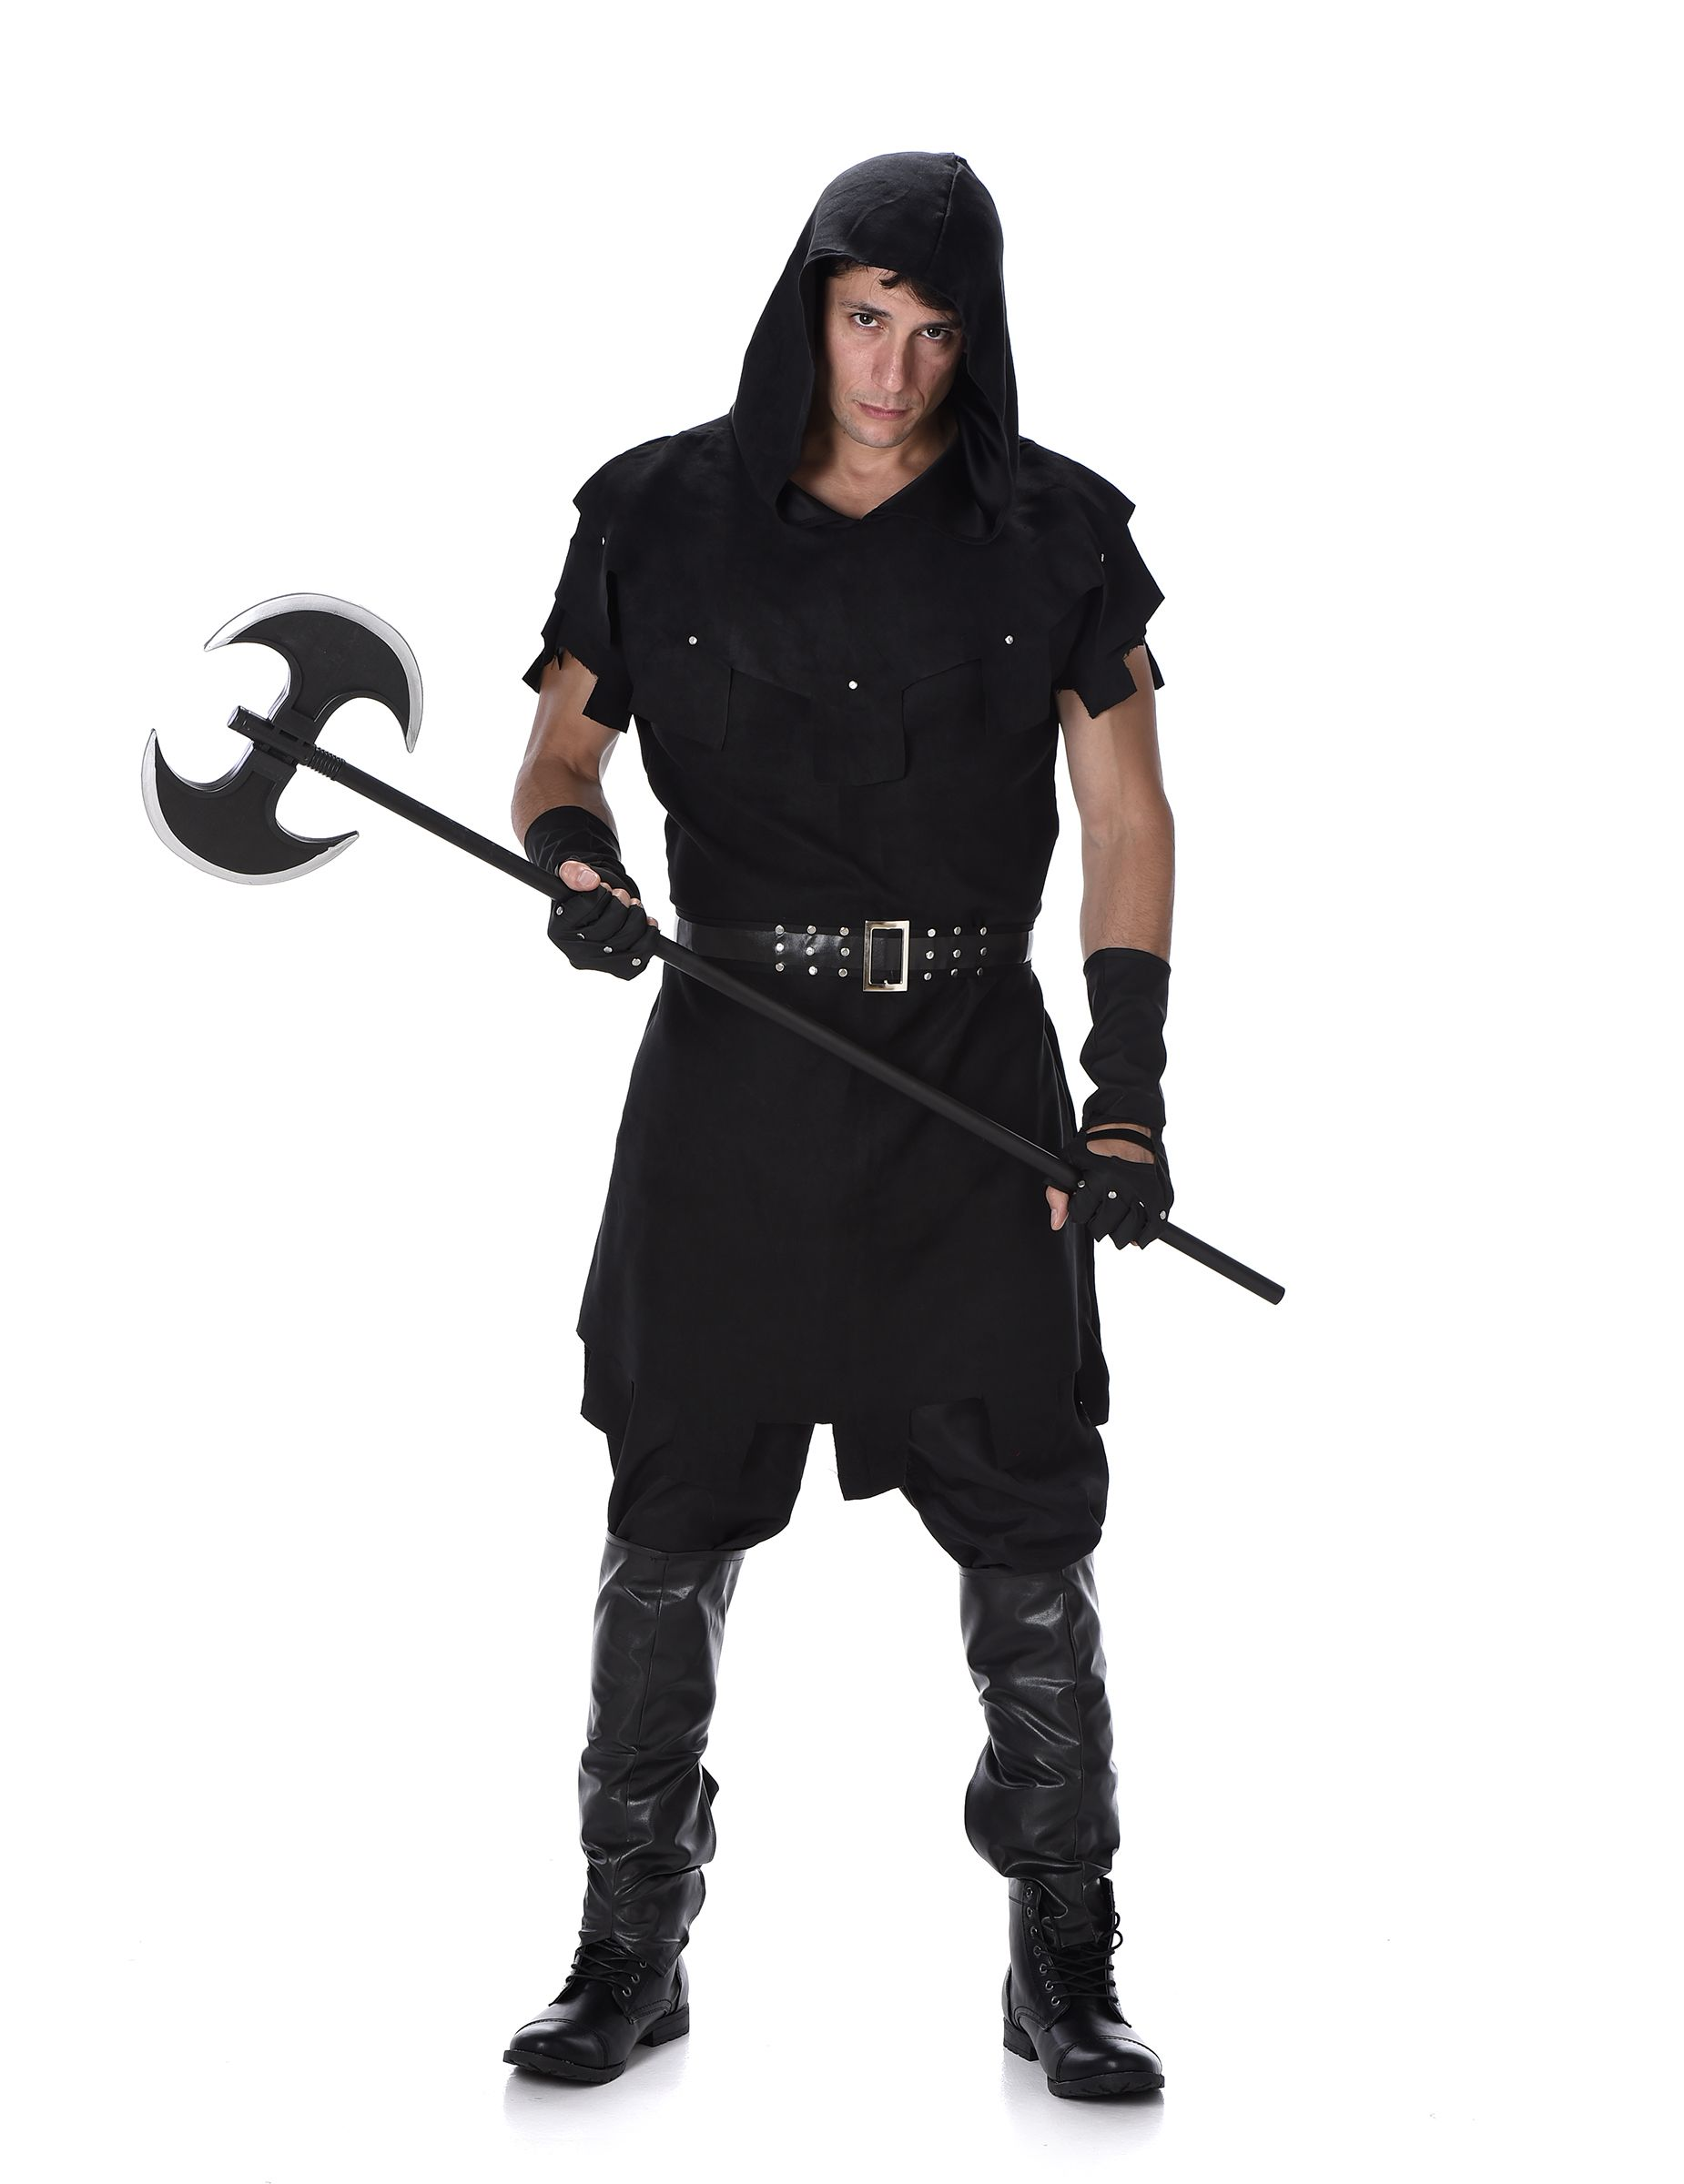 THE EXECUTIONER MIDDLE AGES MEDIEVAL RENAISSANCE ADULT MENS HALLOWEEN COSTUME